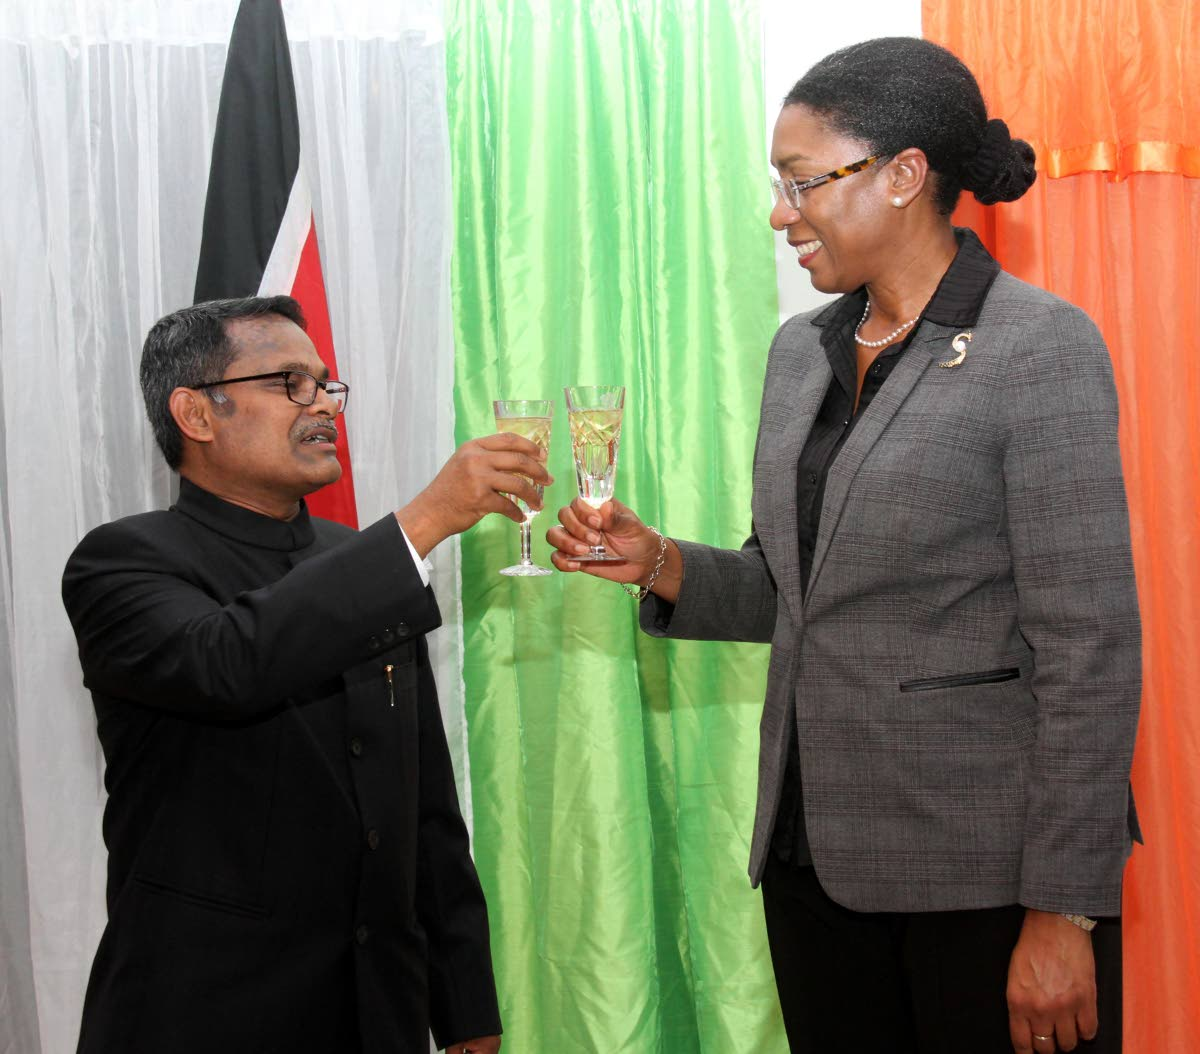 Newly appointed Indian High Commissioner to TT Arun Kumar Sahu, left,  and Foreign and Caricom Affairs permanent secretary Reita Toussaint share a toast.